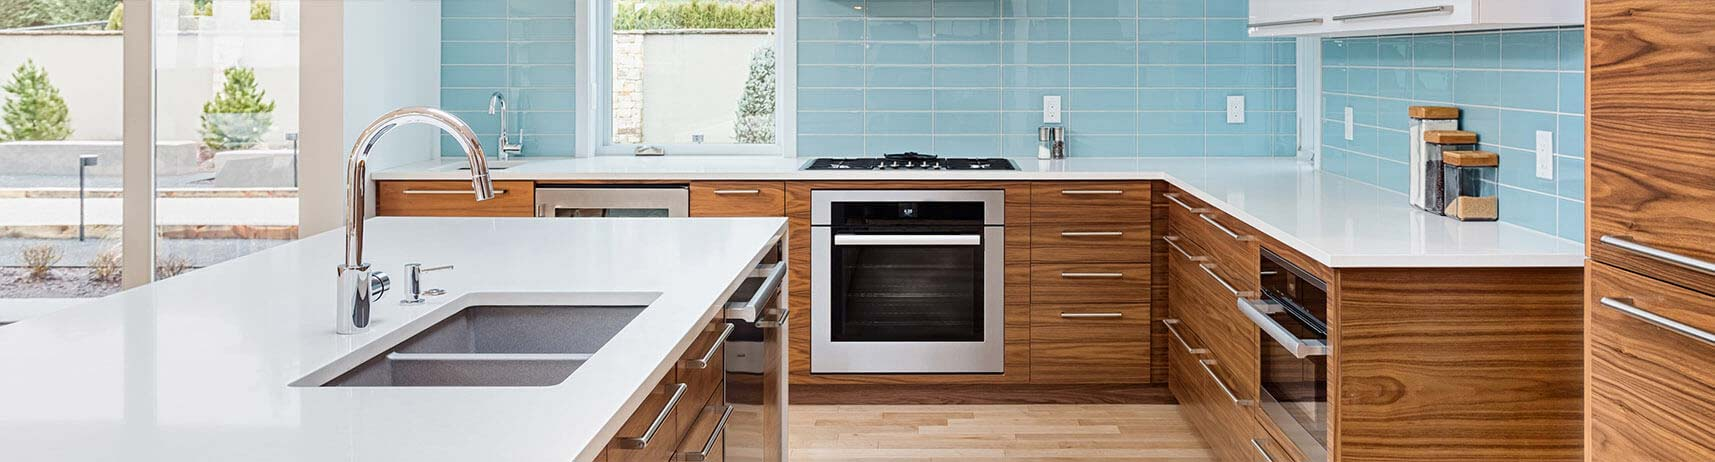 Smithfield General Contractor, Home Remodeling Contractor and Kitchen Remodeling Contractor